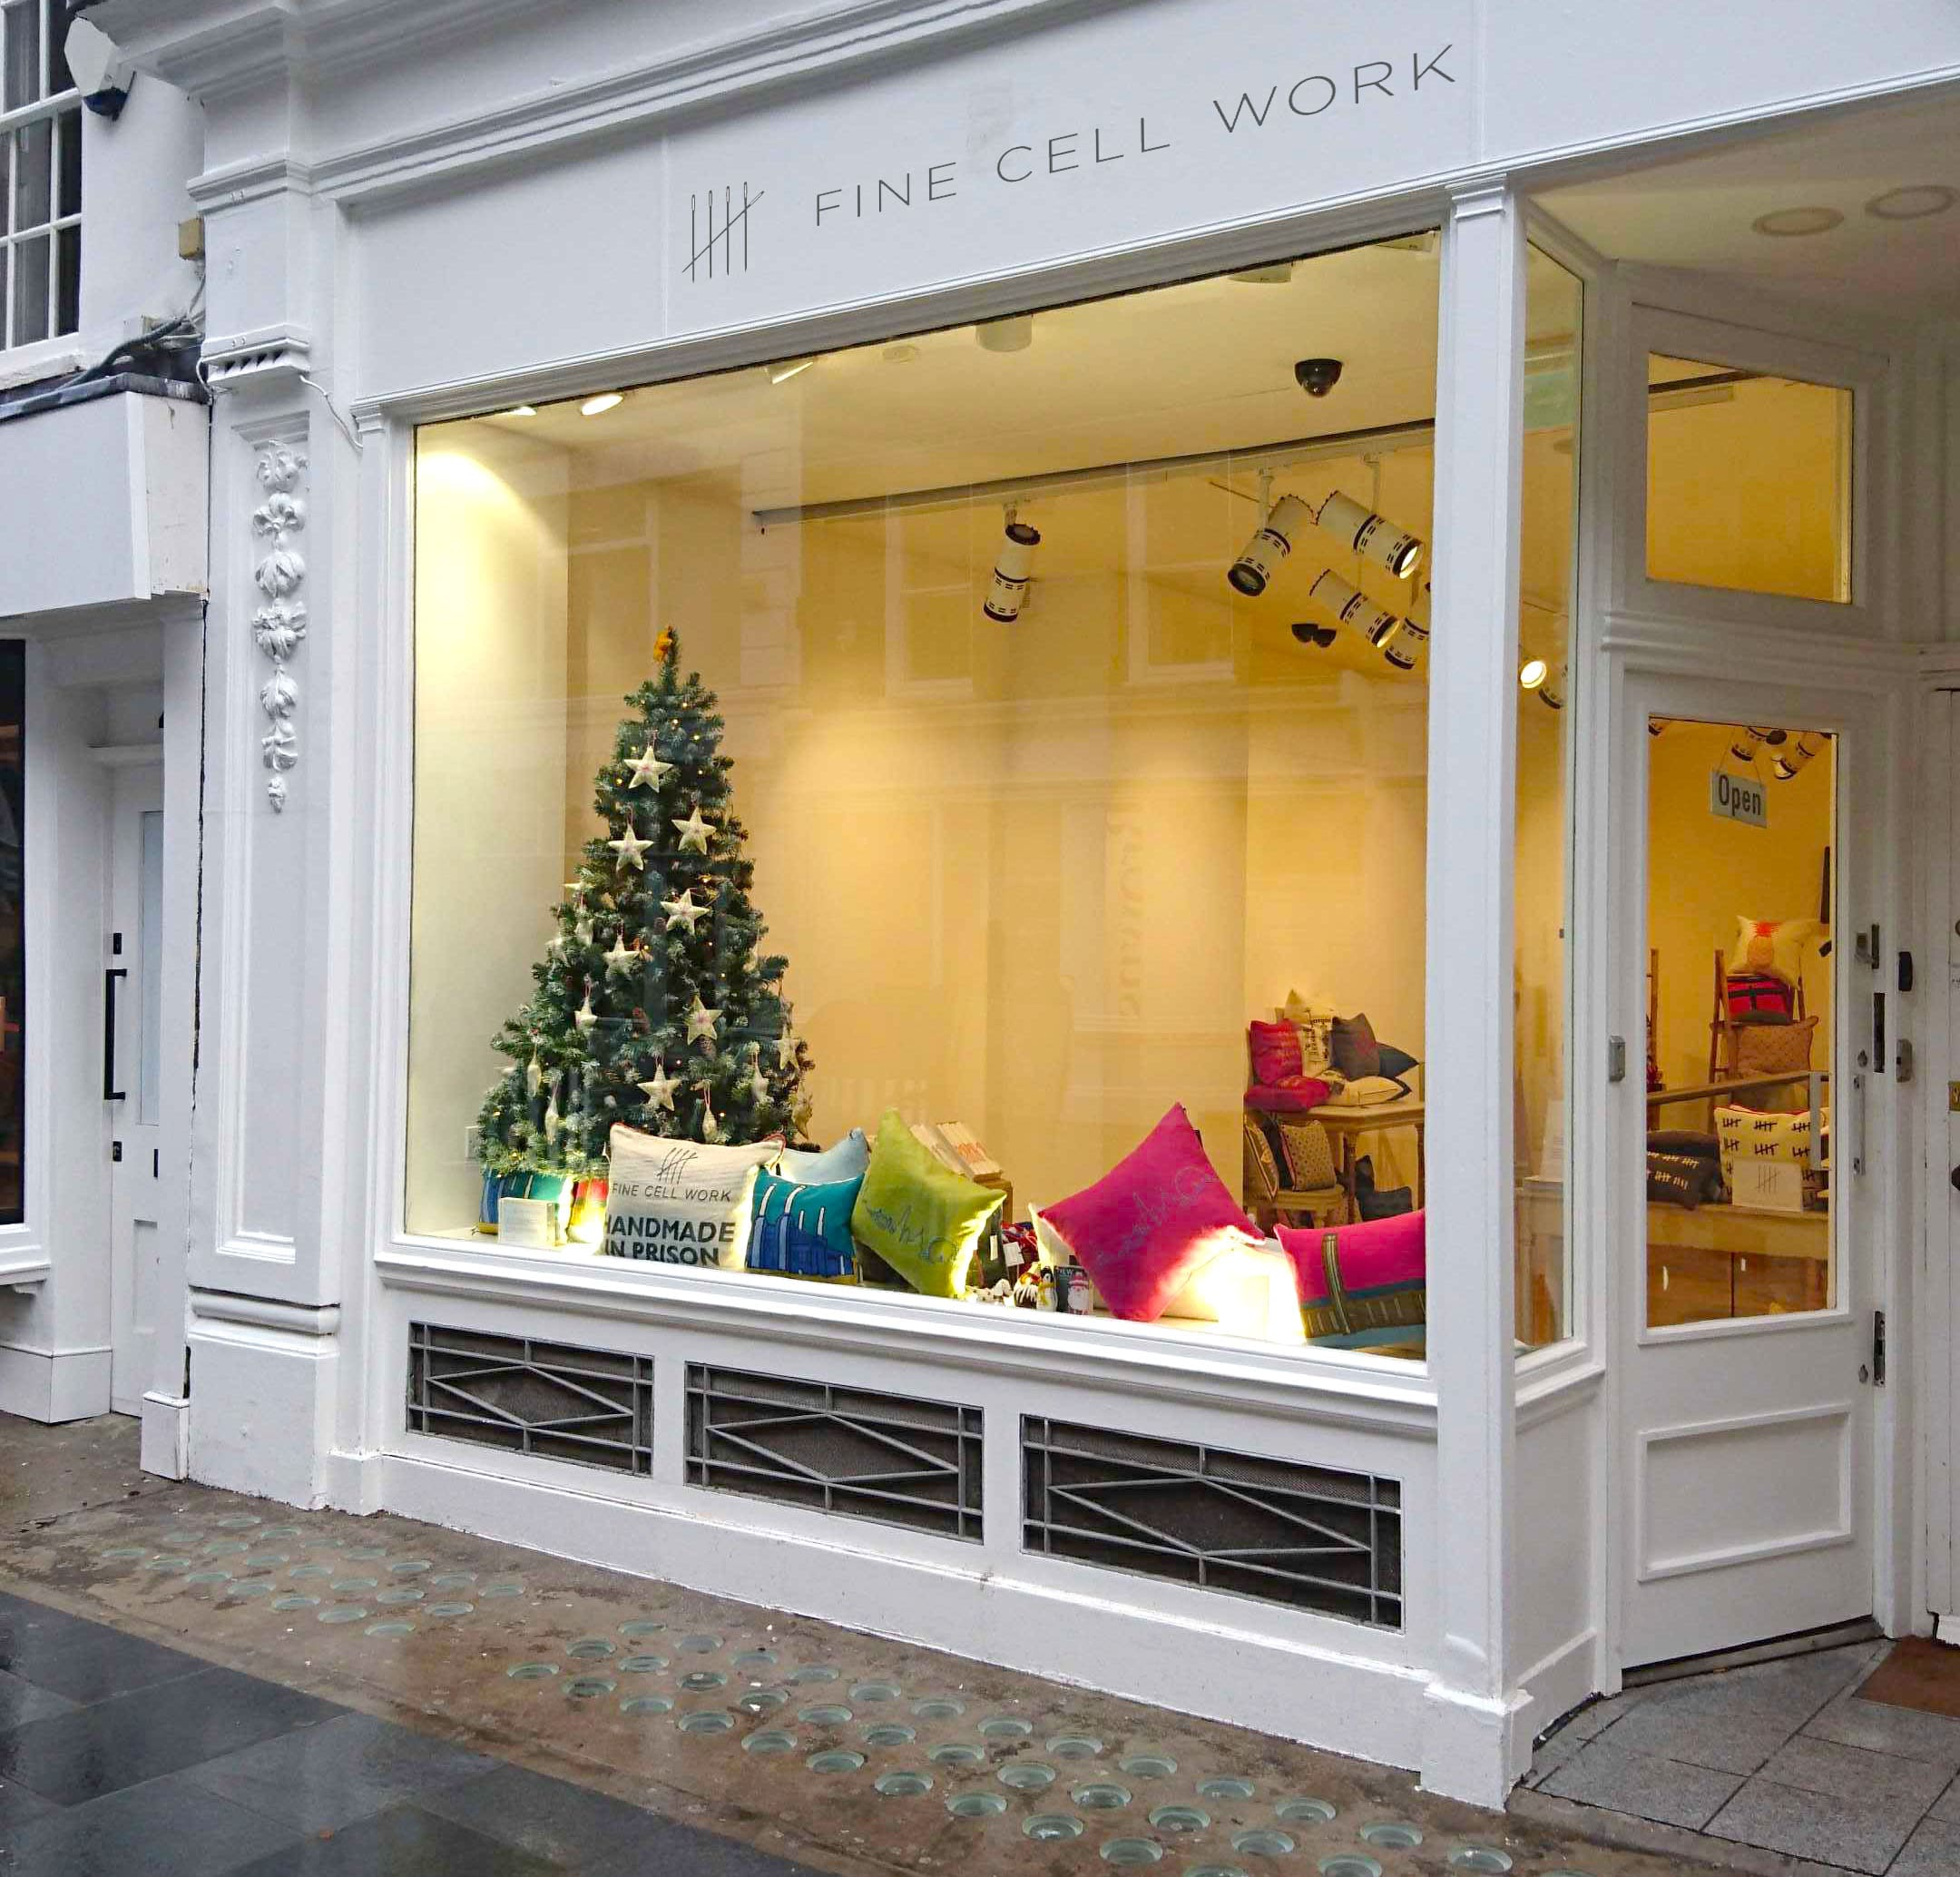 Fine Cell Work 42 South Molton Street Mayfair London Pop-up Shop Christmas December January